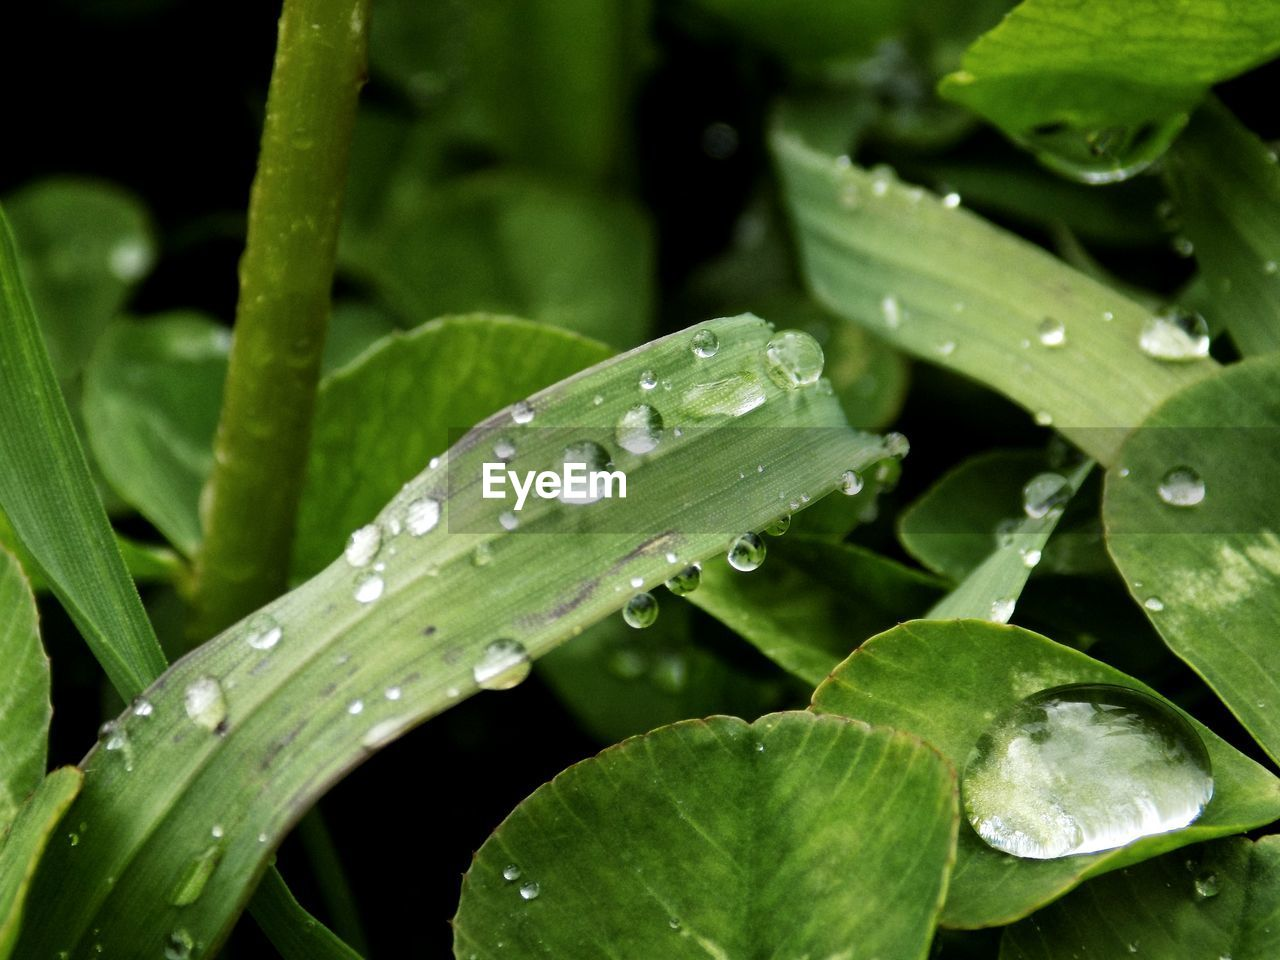 drop, growth, leaf, plant part, water, wet, green color, plant, beauty in nature, close-up, freshness, nature, no people, dew, day, rain, purity, outdoors, raindrop, leaves, rainy season, blade of grass